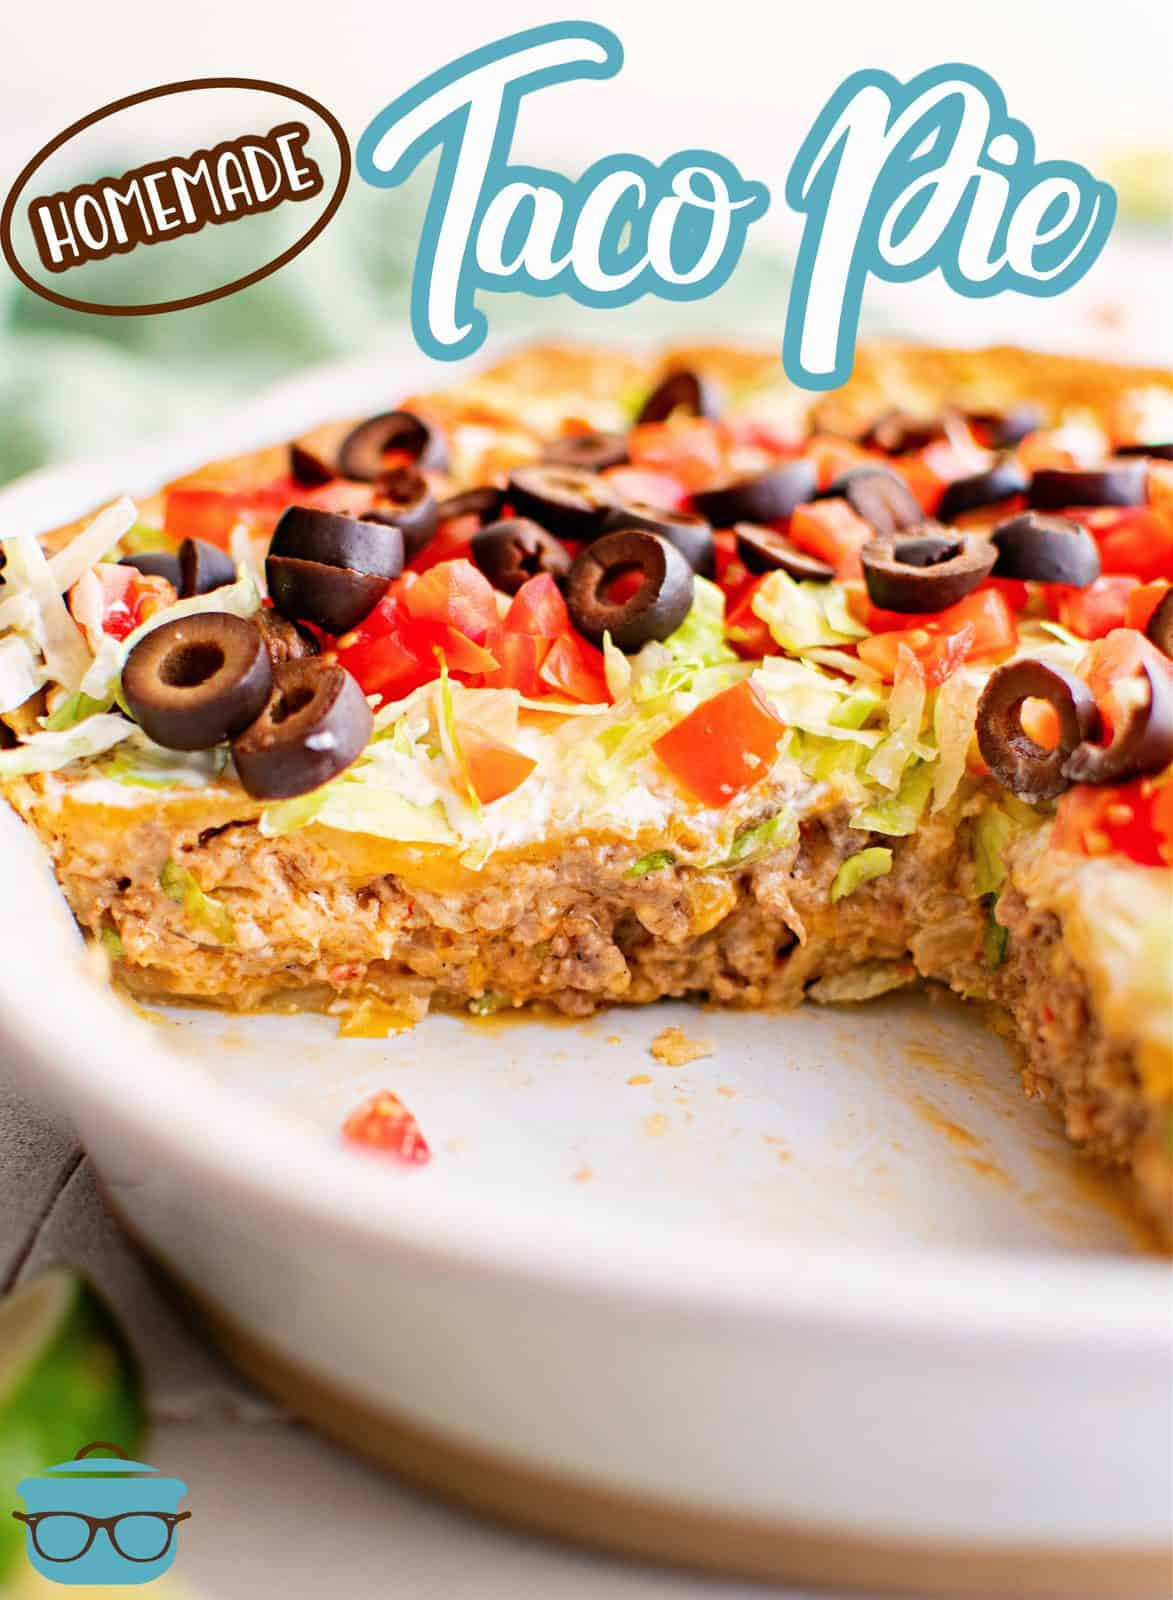 Pinterest image of Homemade Taco Pie with slices removed showing filling.